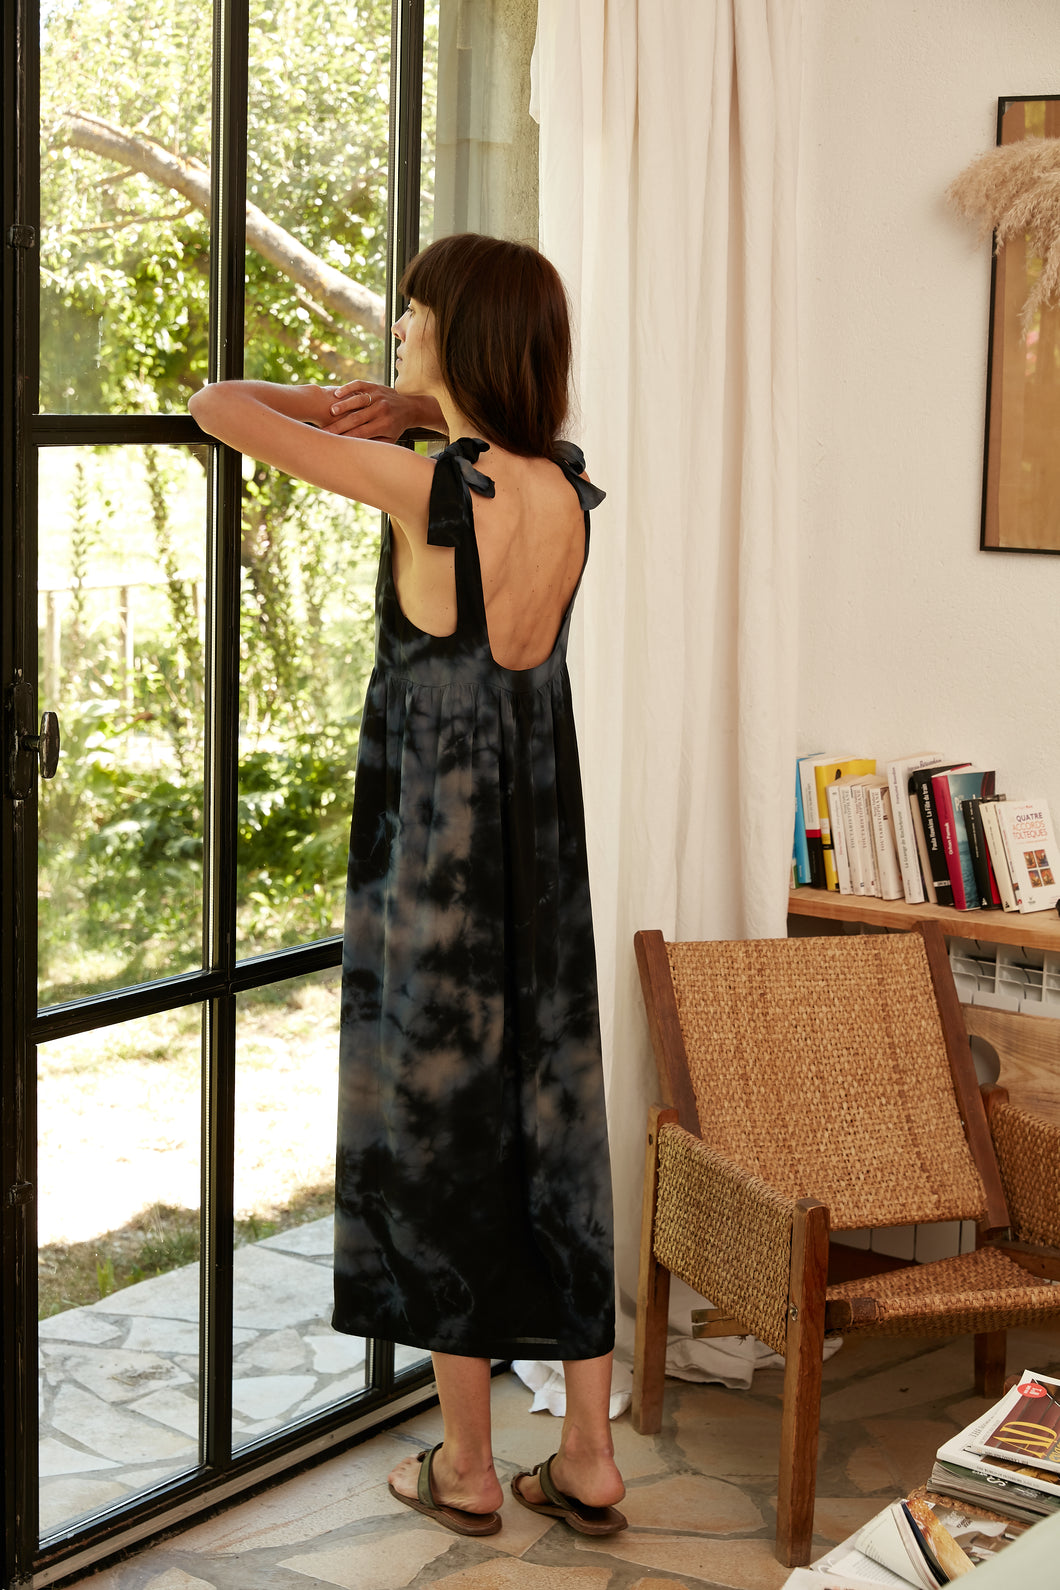 Robe Louisette Tie and dye